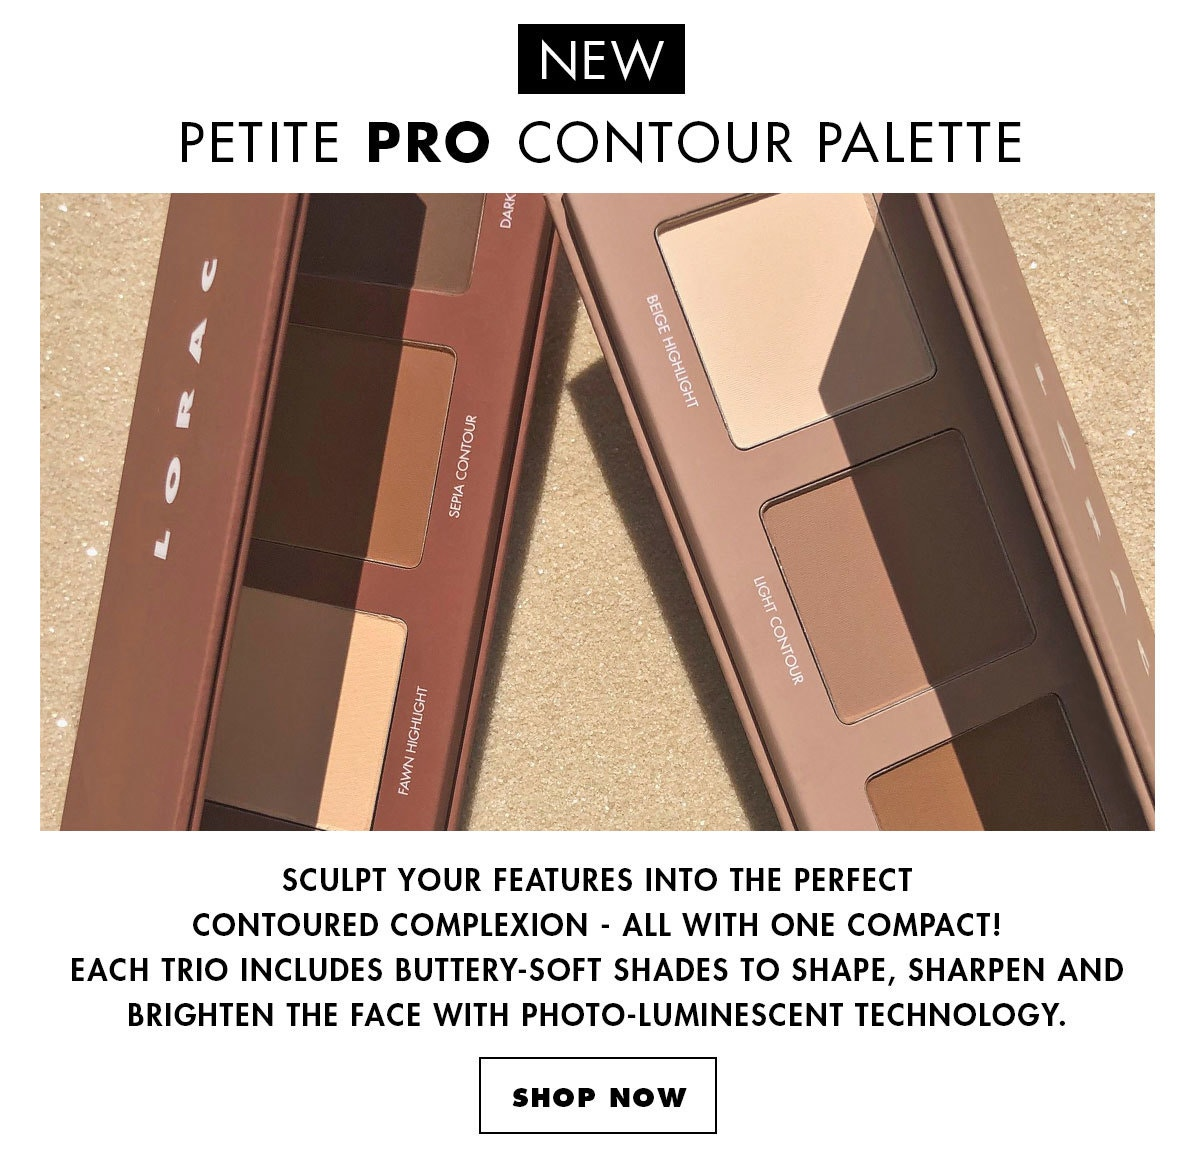 New Petite PRO Contour Palette | Shop Now | LORAC | Products angleded lids open, with sand in background